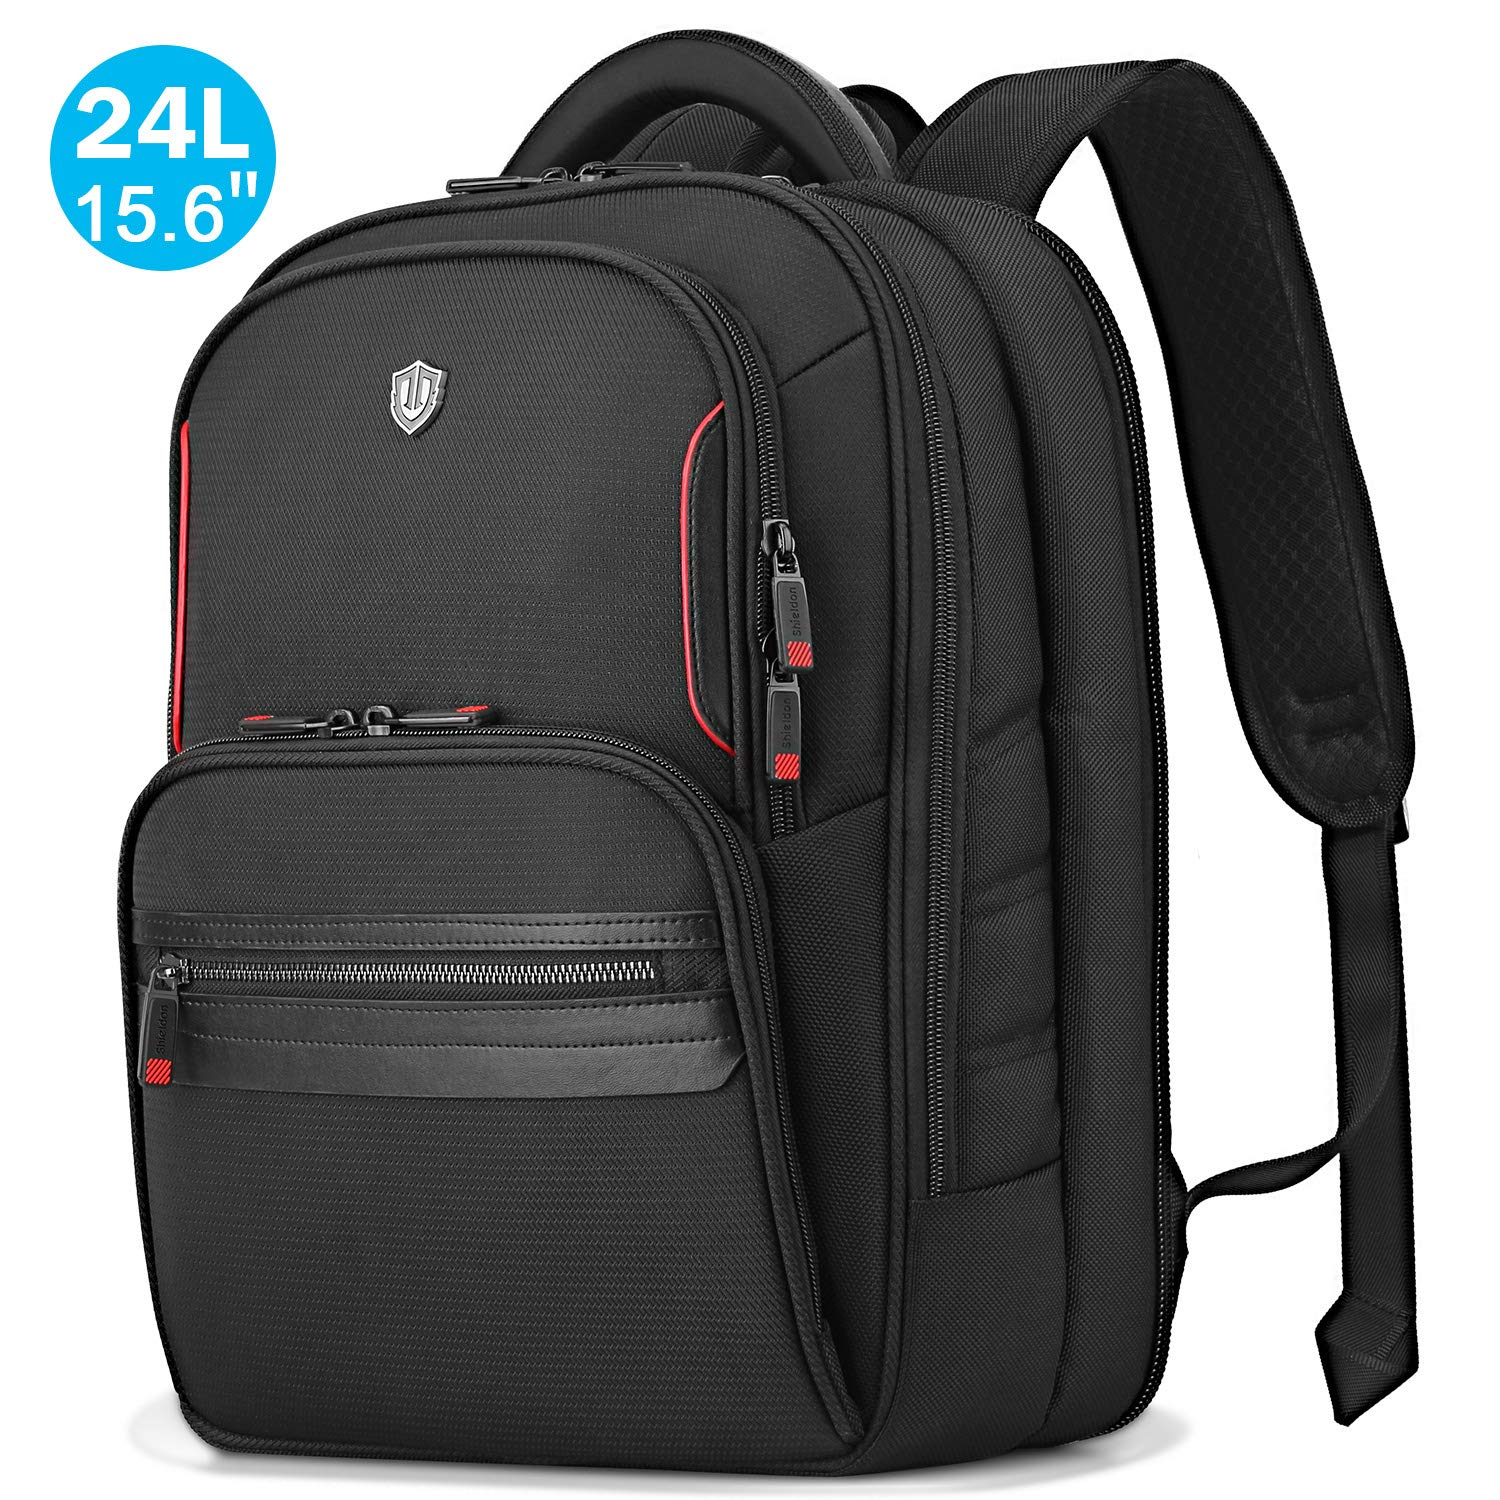 SHIELDON 15.6-inch Laptop Backpack, TSA Friendly Business Computer Bag Water Resistant 24L Travel Carry-on Notebook Backpack with Adjustable Laptop Sleeve for Men Women Collage School – Black